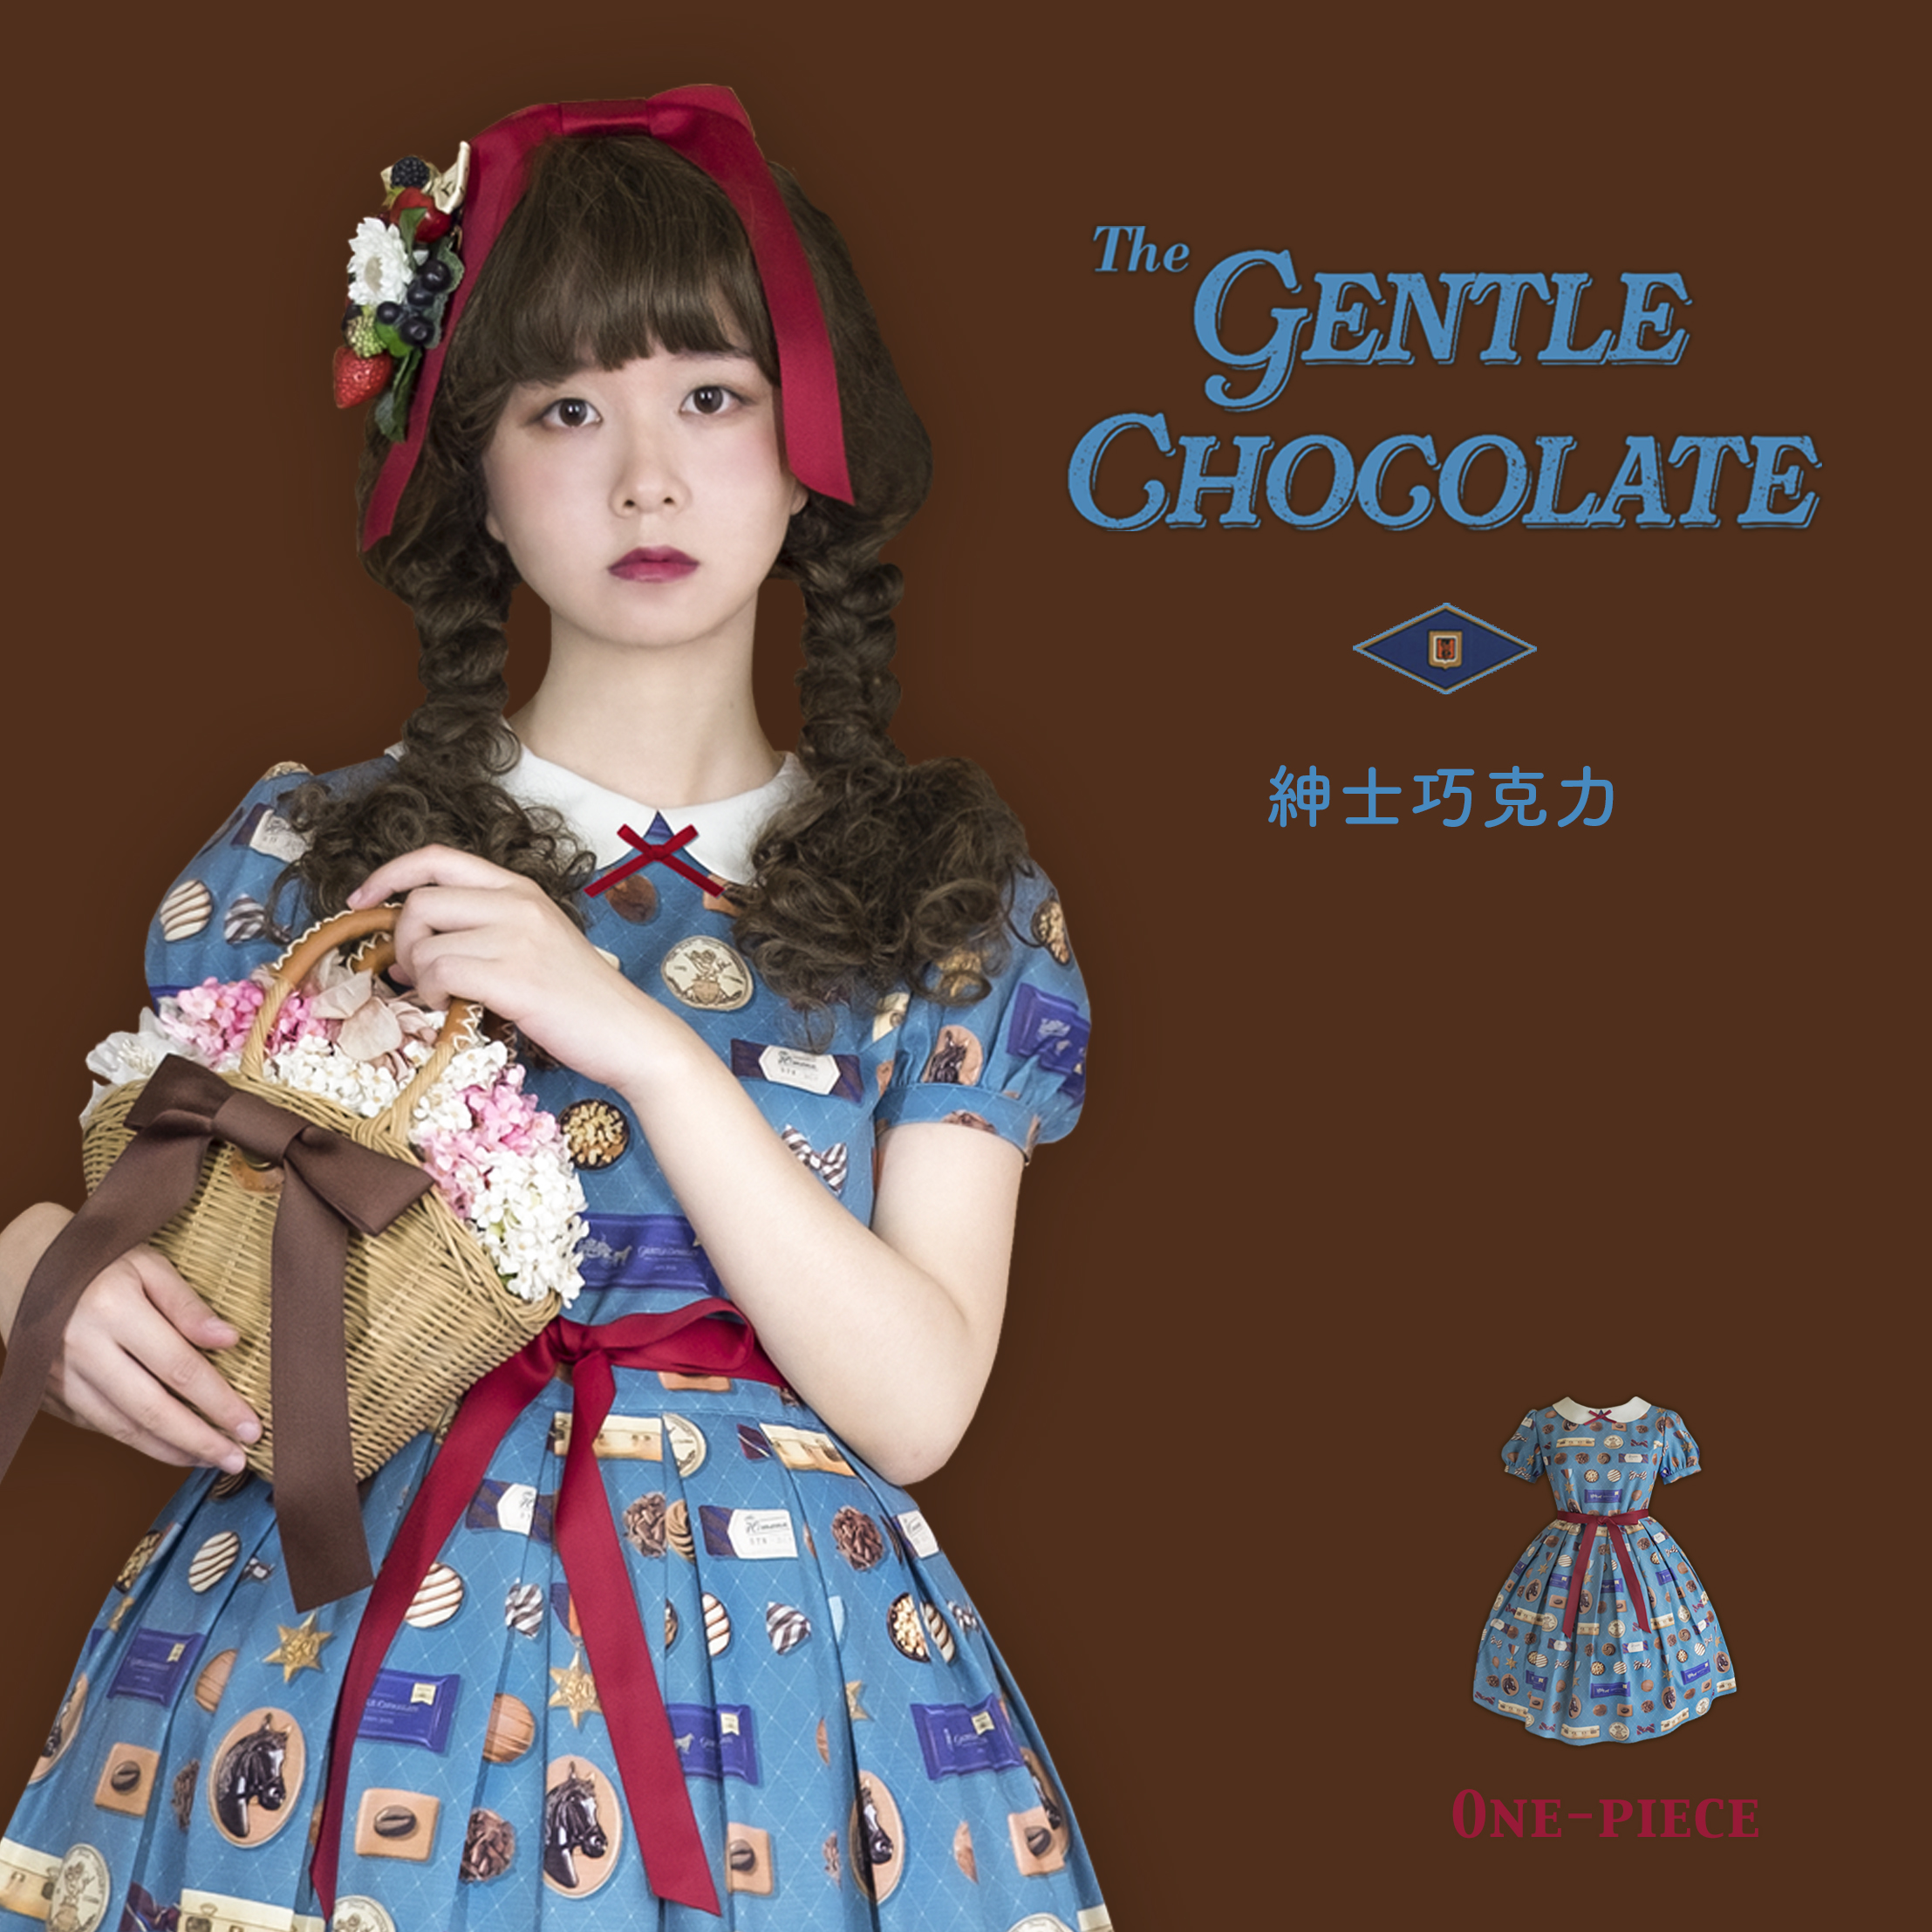 [spot] original design by himena dress gentleman chocolate Lolita Lolita OP dress